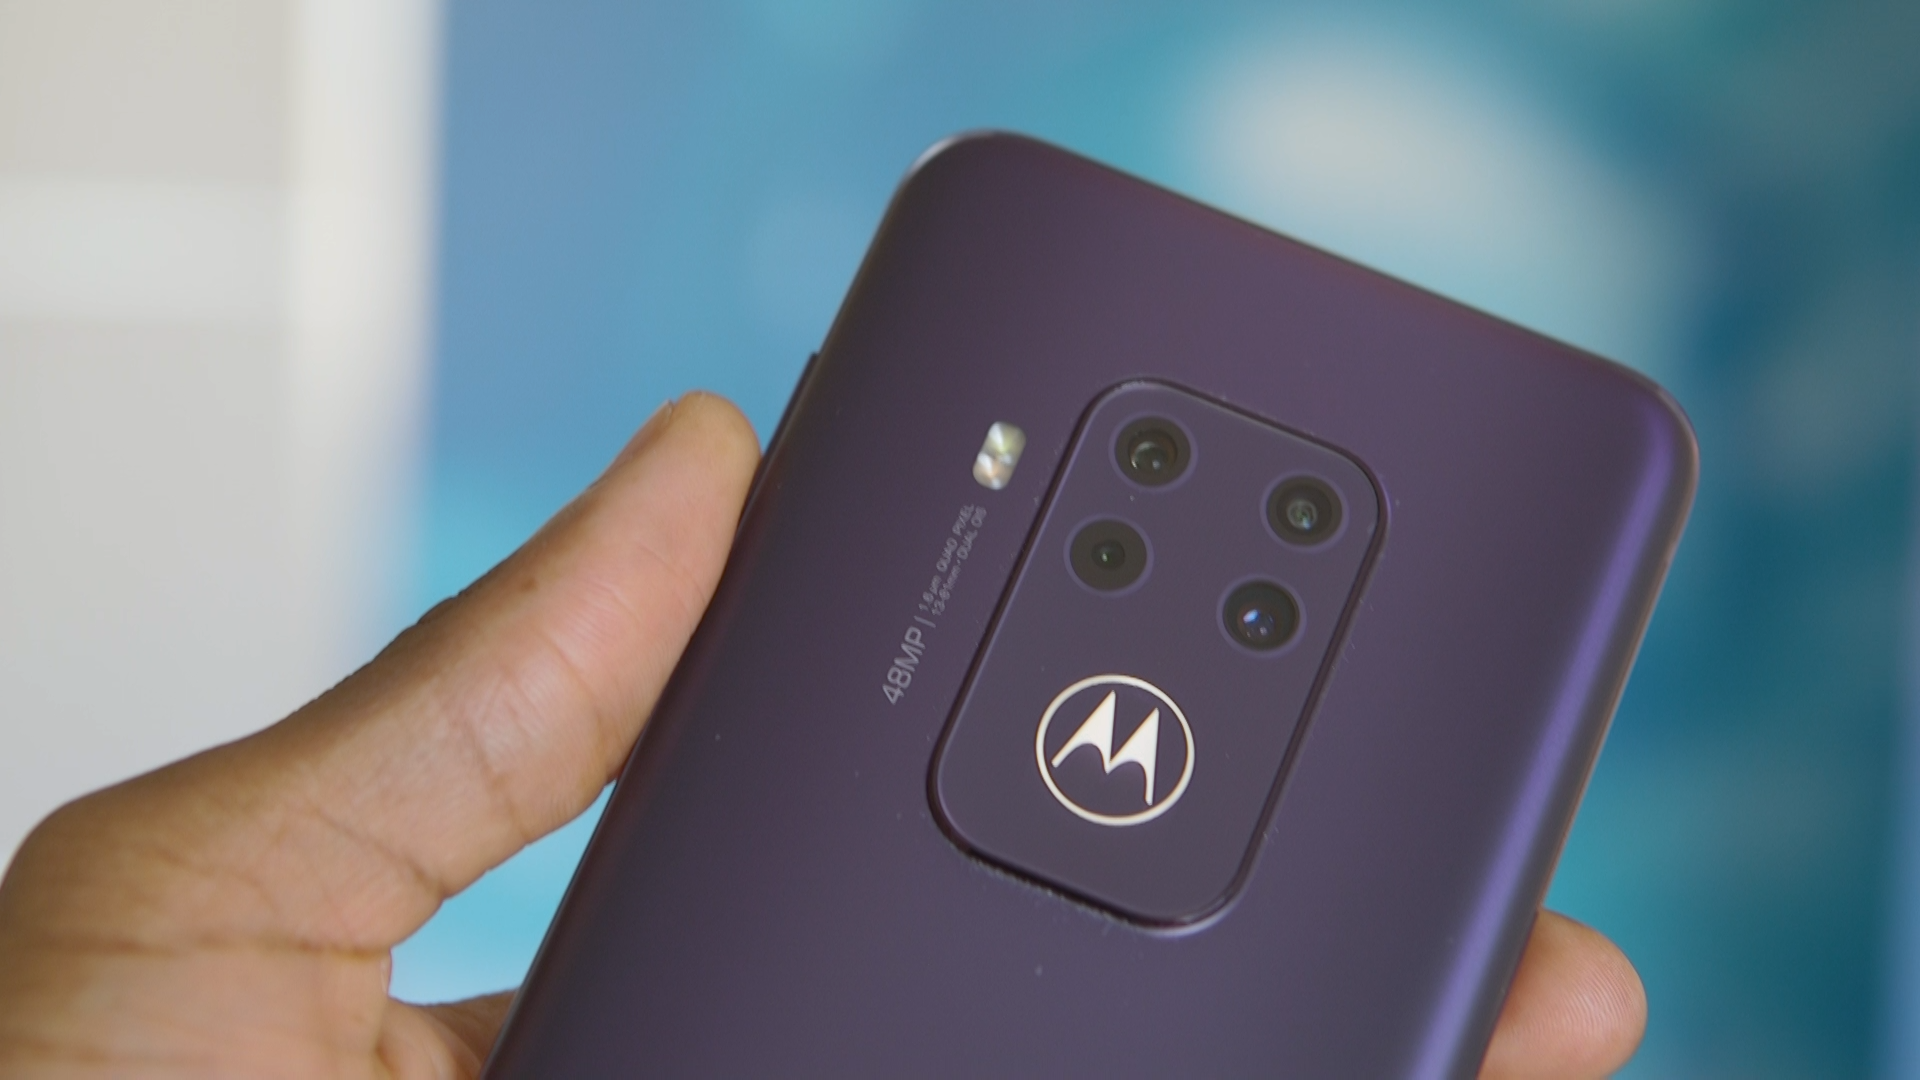 Video: Motorola Zoom has premium cameras at half the price